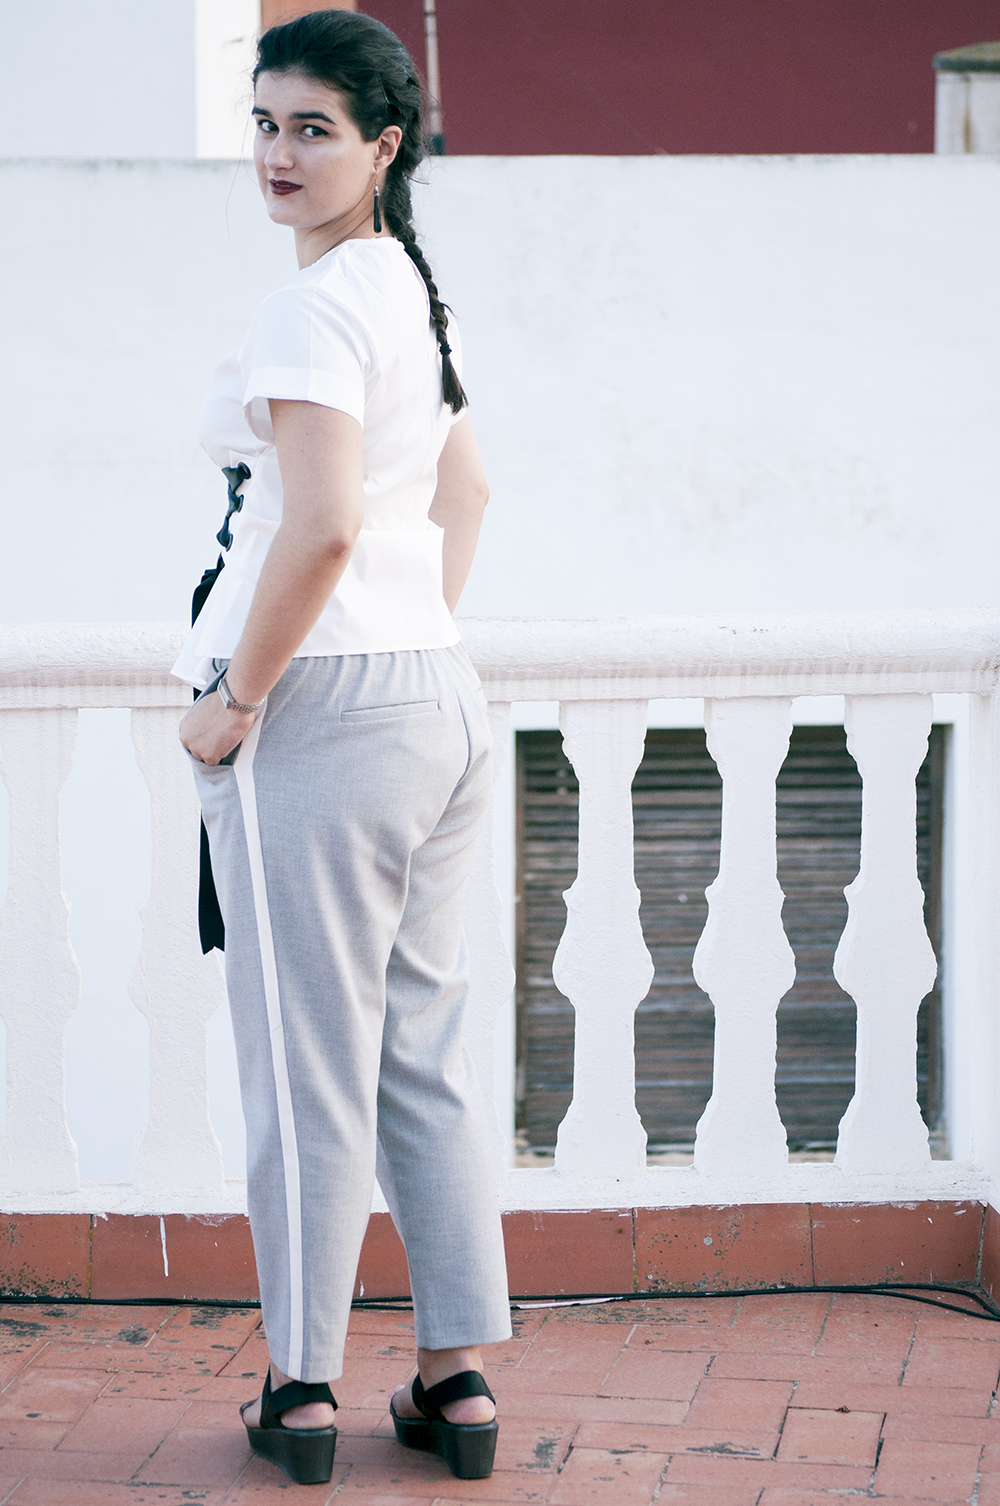 something fashion blogger influencer valencia spain, lightinthebox white T shirt laced corset tailored pants grey Zara